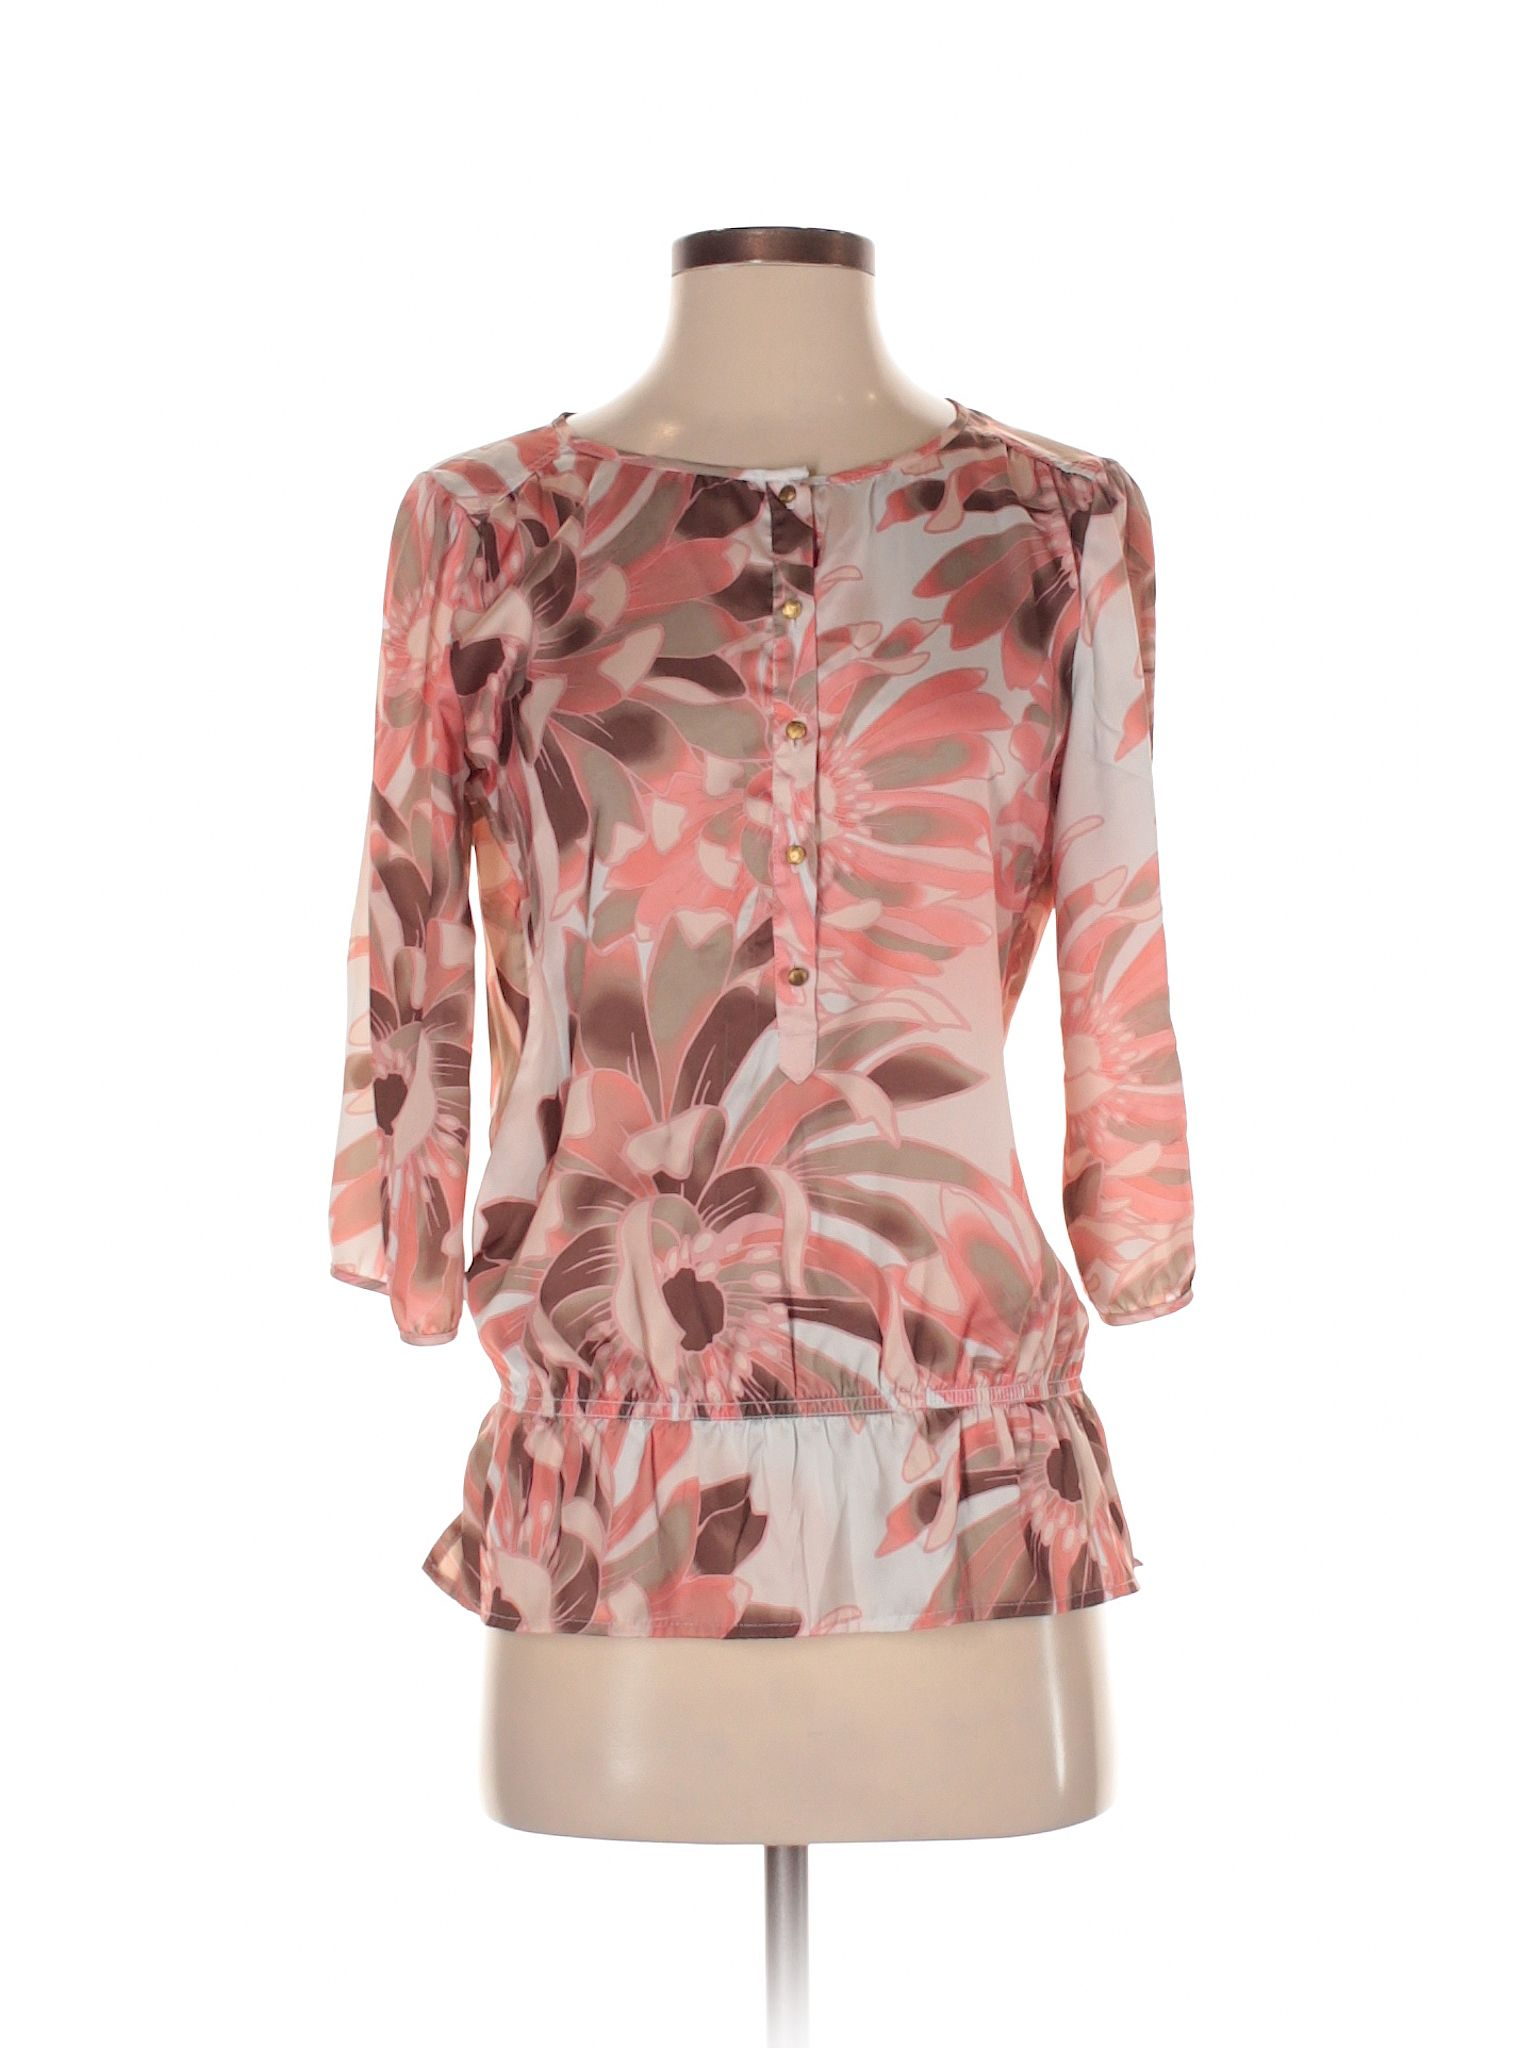 New York & Company 34 Sleeve Blouse Size 000 Coral